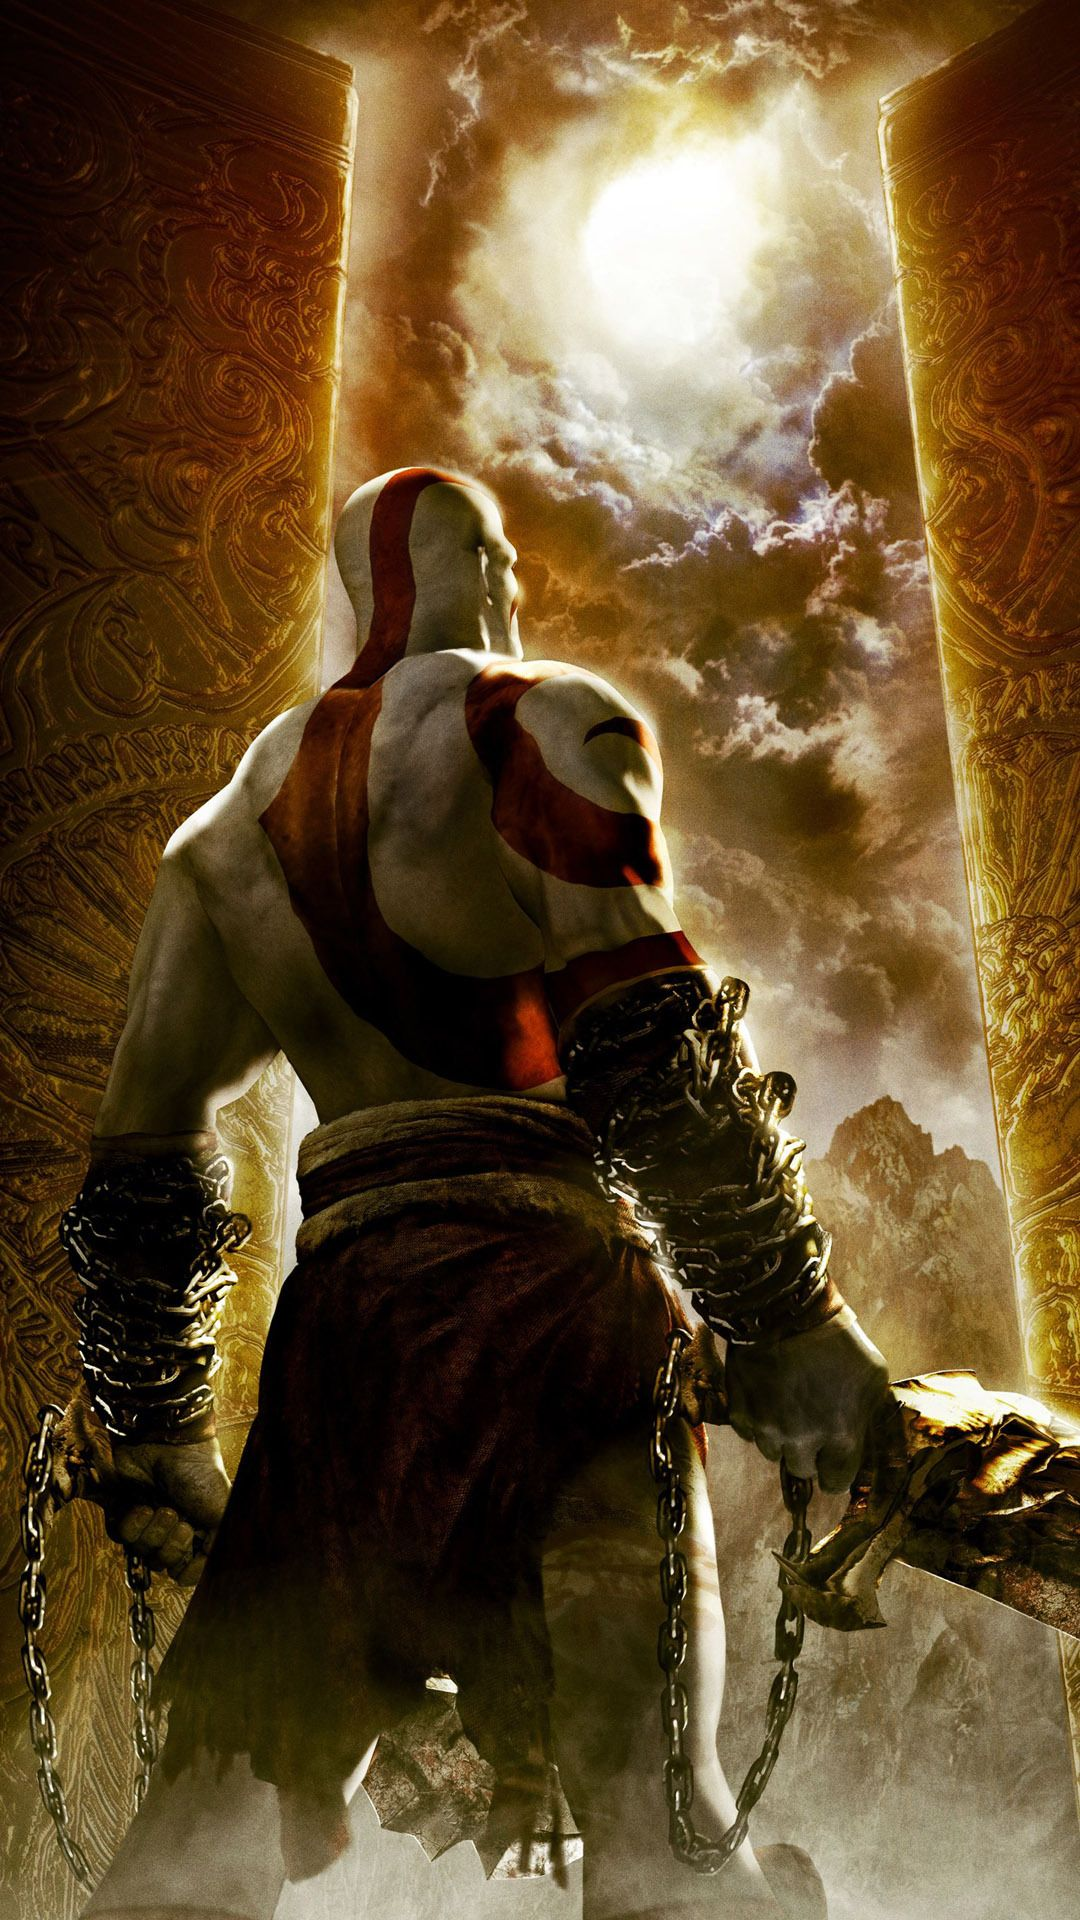 Download Wallpaper 1080x1920 Kratos God Of War Face Eyes Scar